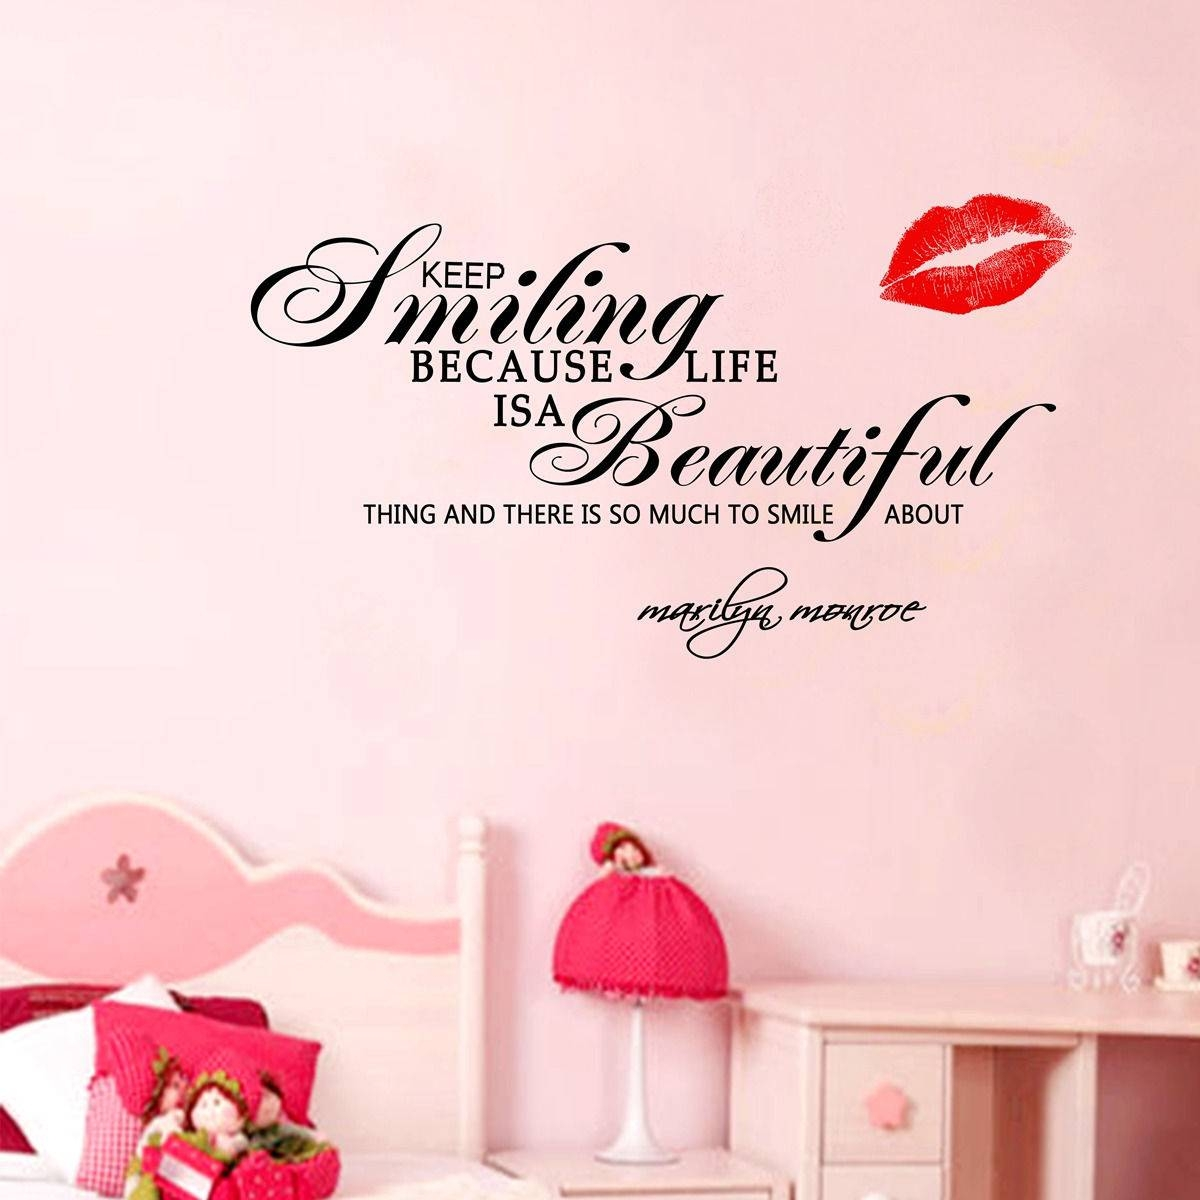 Face Wall Sticker Marilyn Monroe Quote Wall Decal Vinyl Art Within 2018 Marilyn Monroe Wall Art Quotes (View 3 of 25)